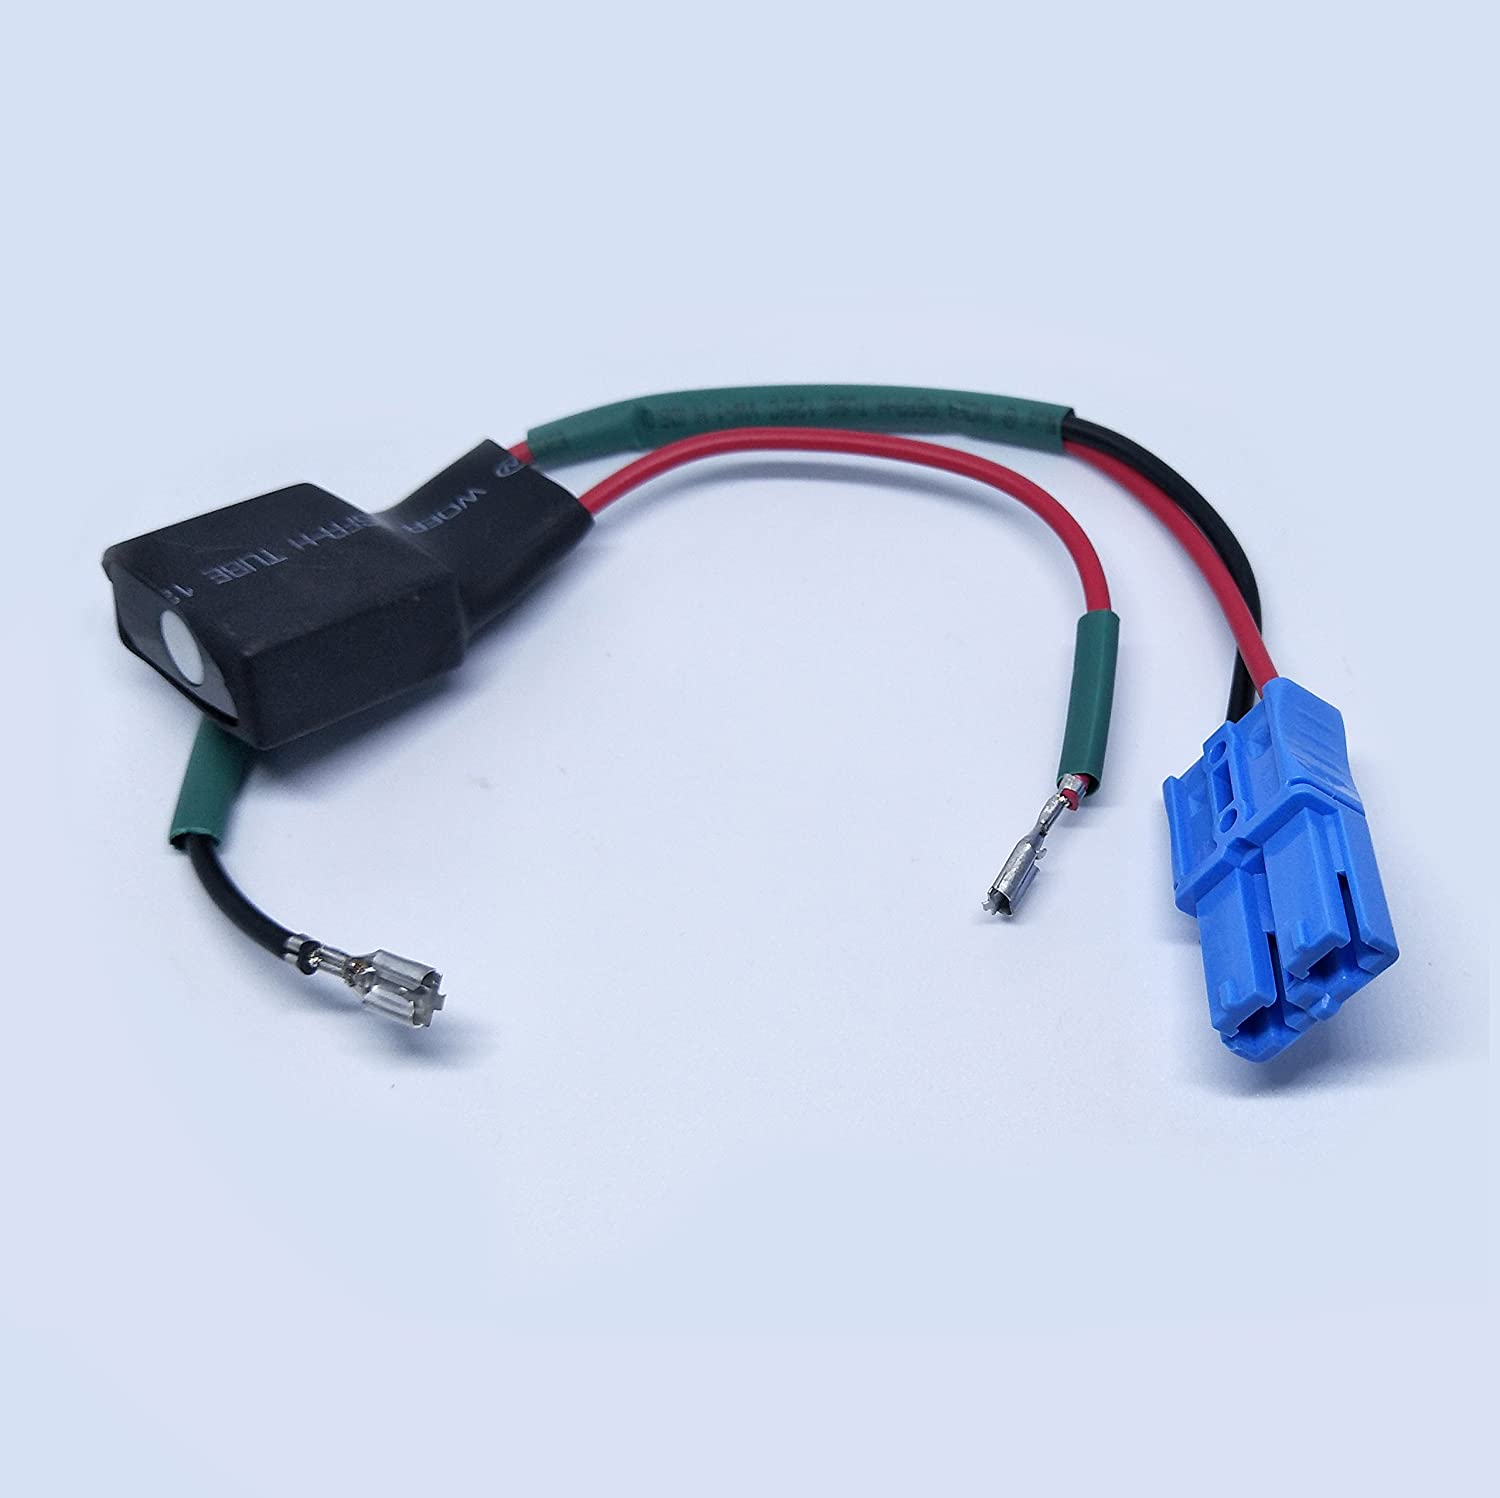 50%OFF Princess Carriage 24V Battery Wire Harness Fuse Connector  Accessories Kids Power Wheels,